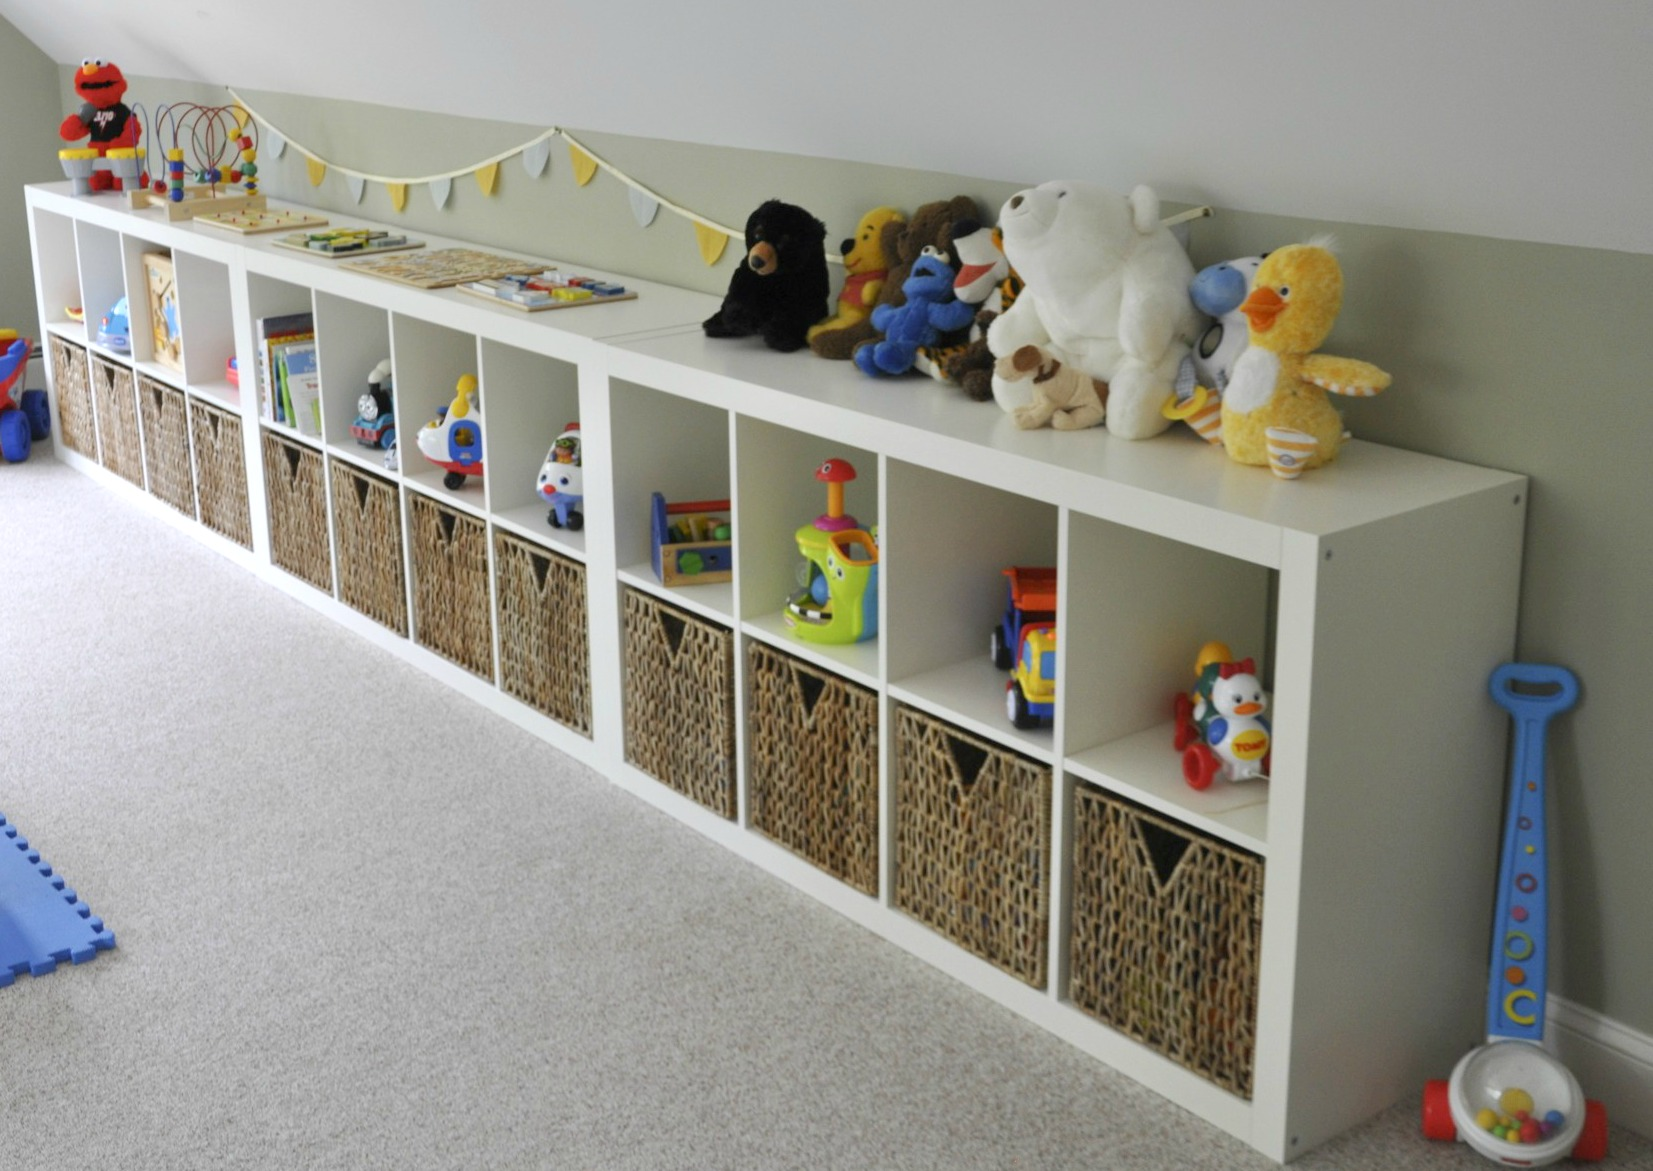 Ikea Expedit Playroom Storage 2 Sisters Cities